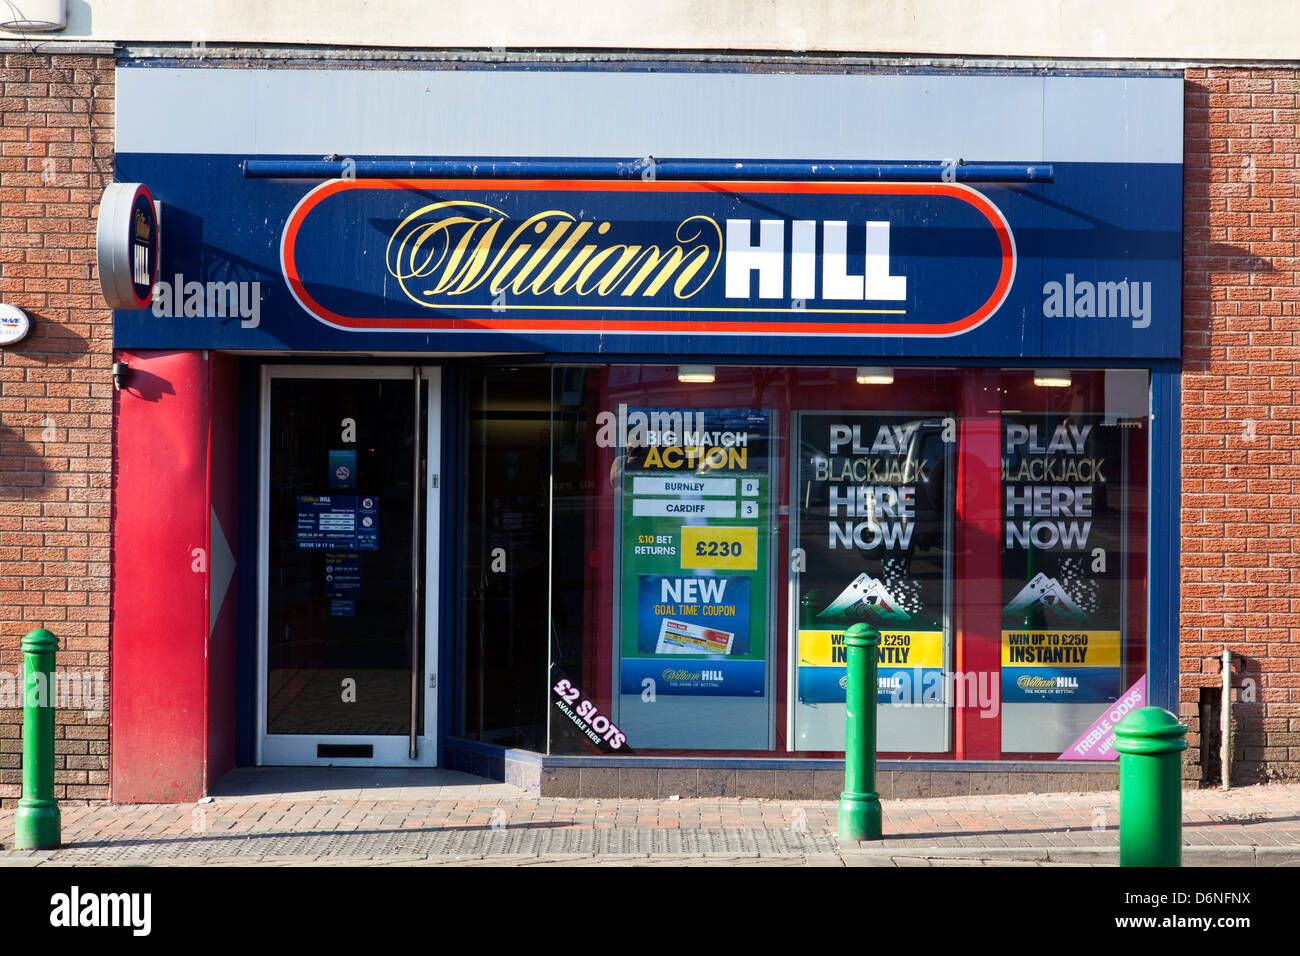 William hill betting shops manchester my localbitcoins south